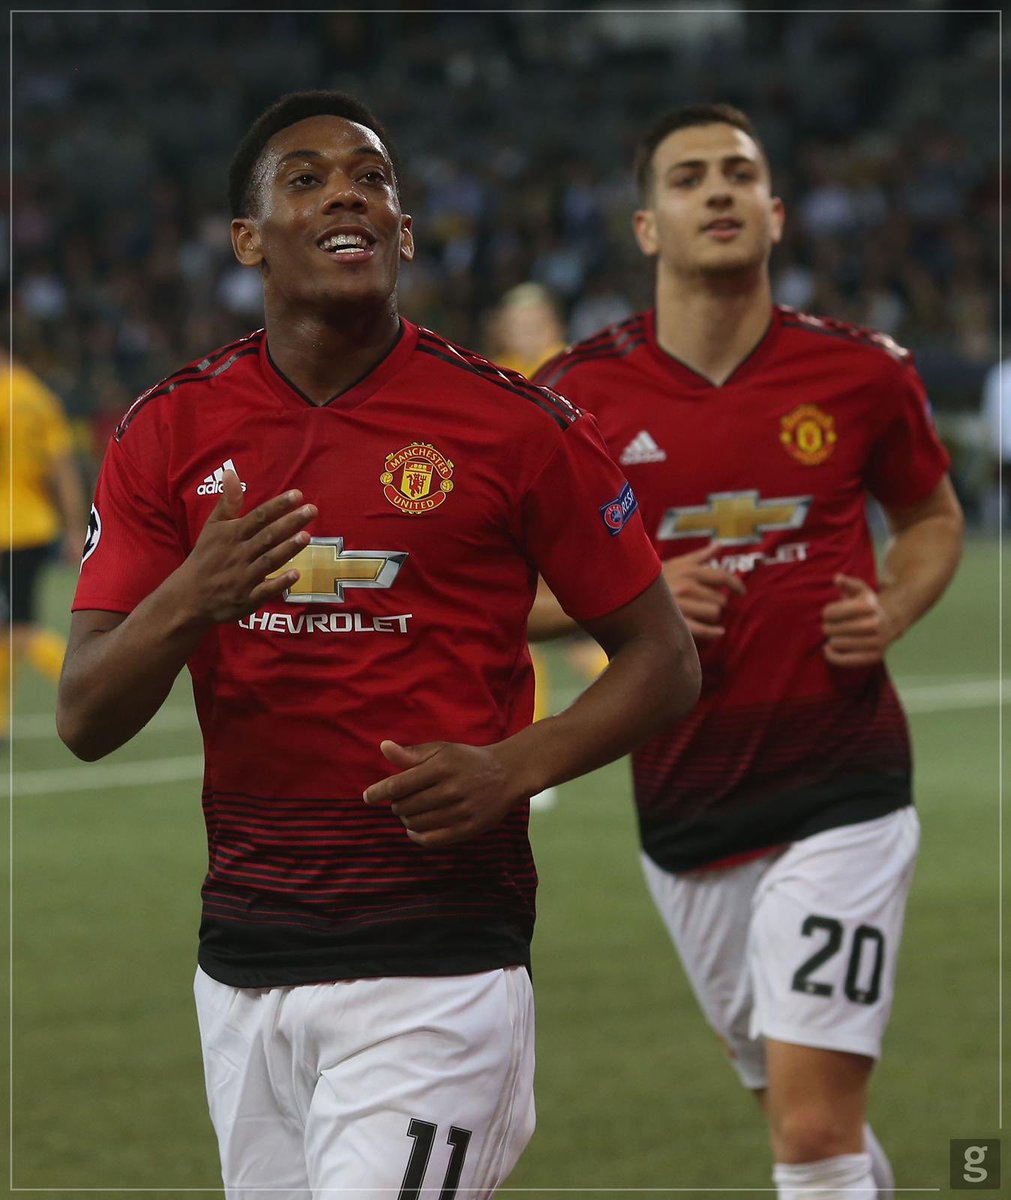 Tony Martial scores again 🎶 Happy Birthday brooo, looking forward to another one tonight 🙏🏾👀